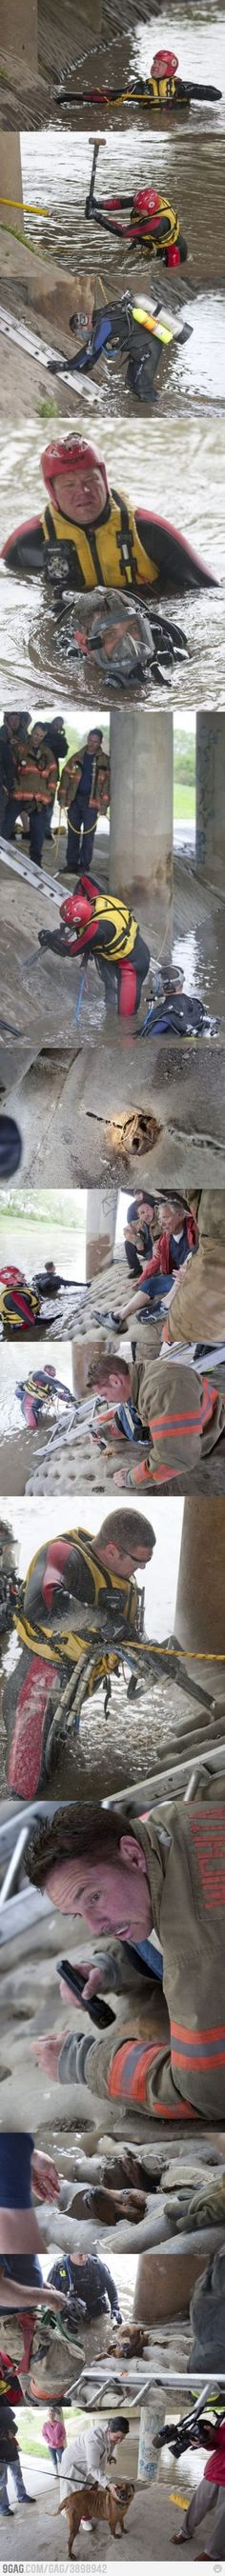 Amazing dog rescue and this is how humans should act towards everything and everyone